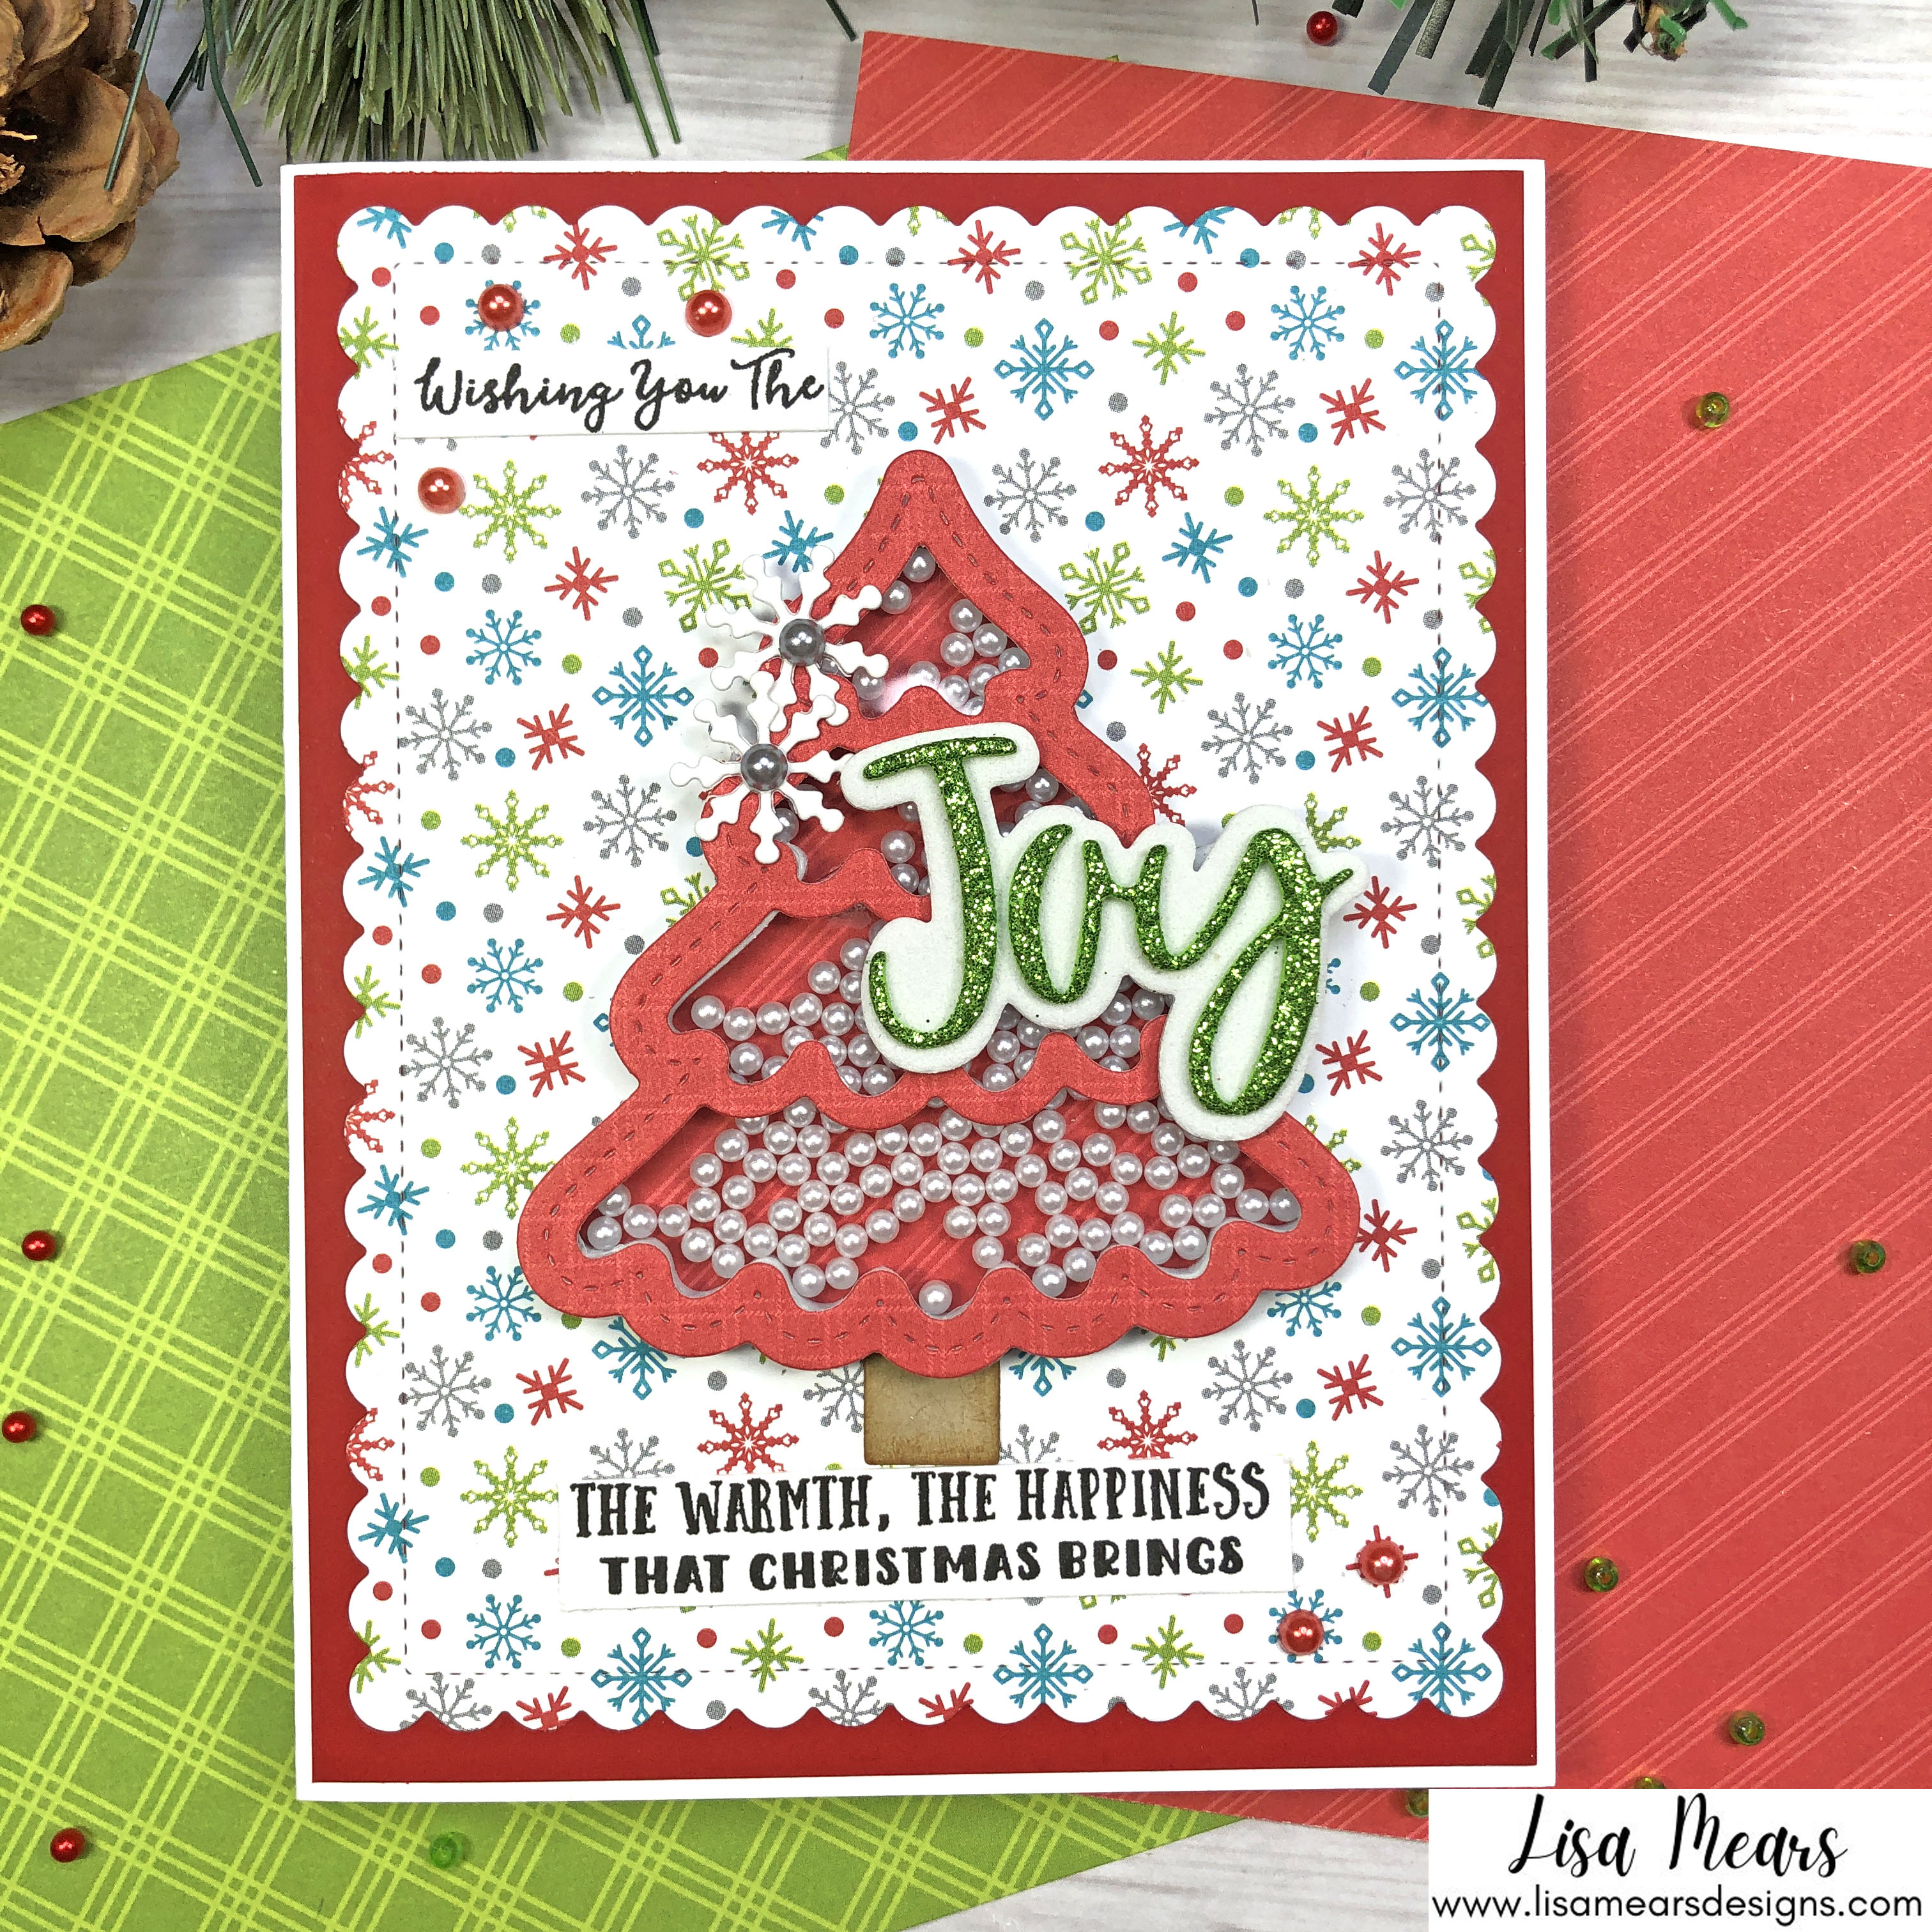 Queen and Company Jolly Jingles Shaker Kit - 10 Cards 1 Kit - Shaker Cards